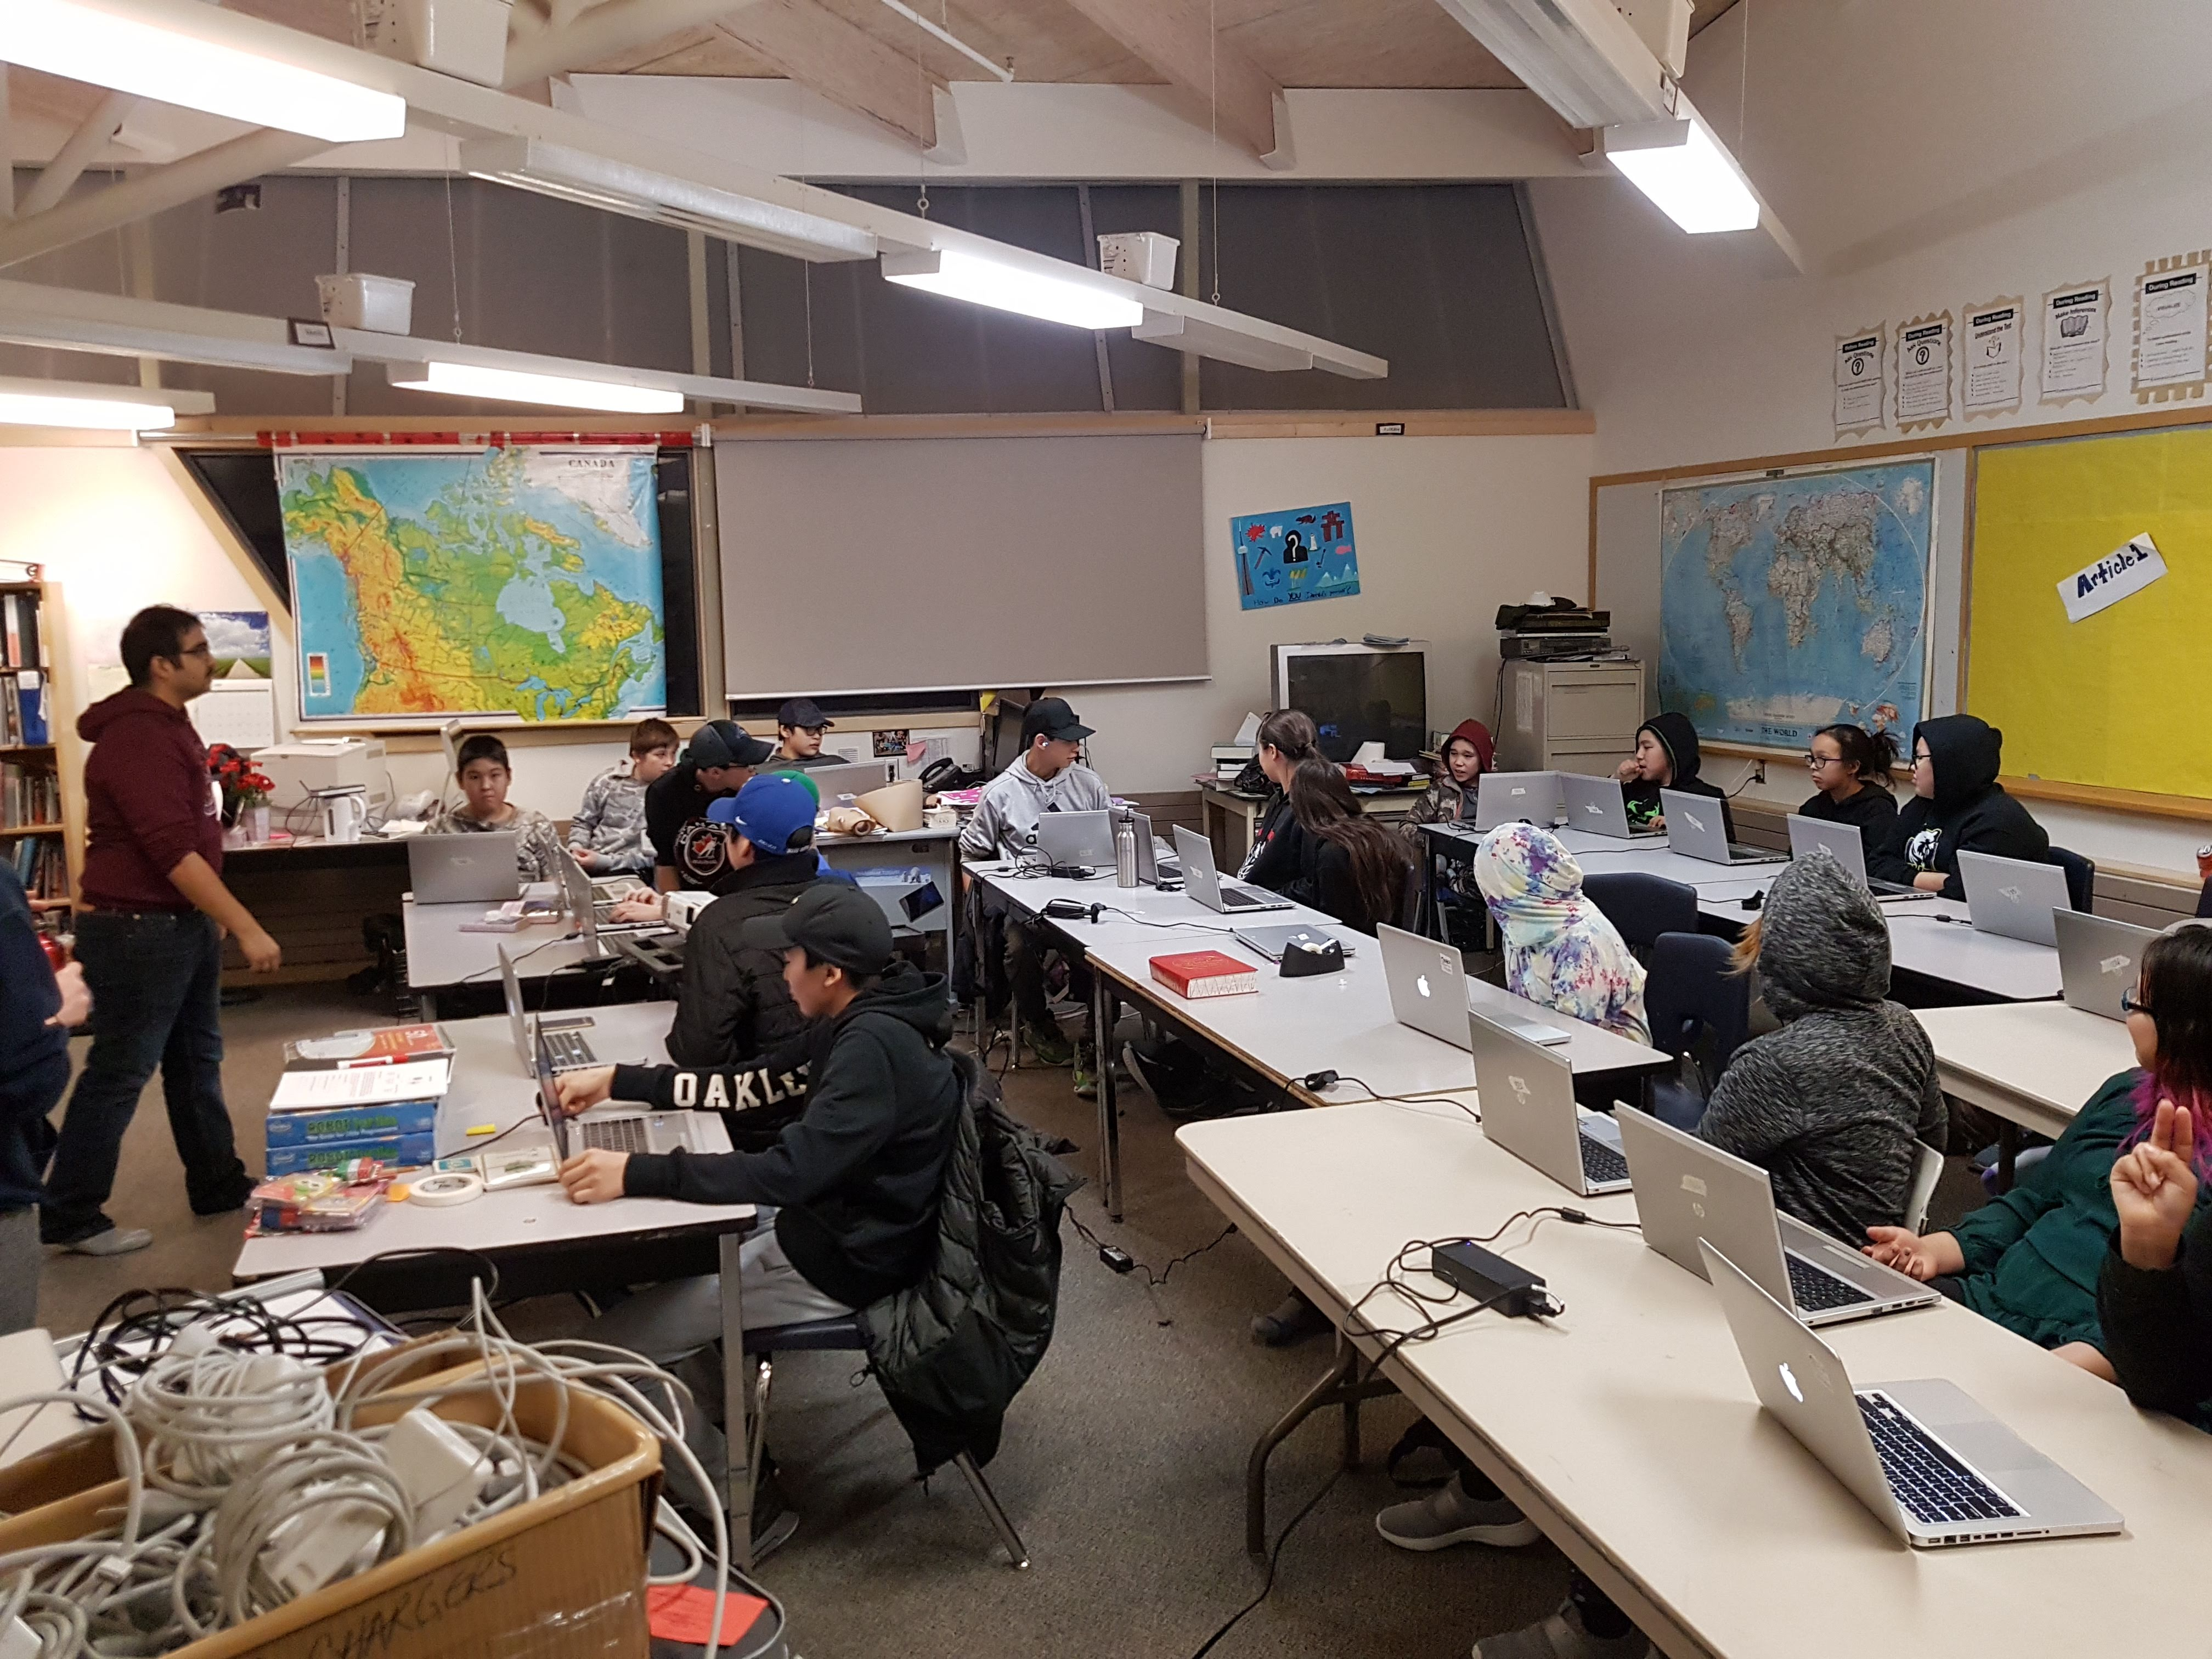 Students on laptops in classroom Nunavut